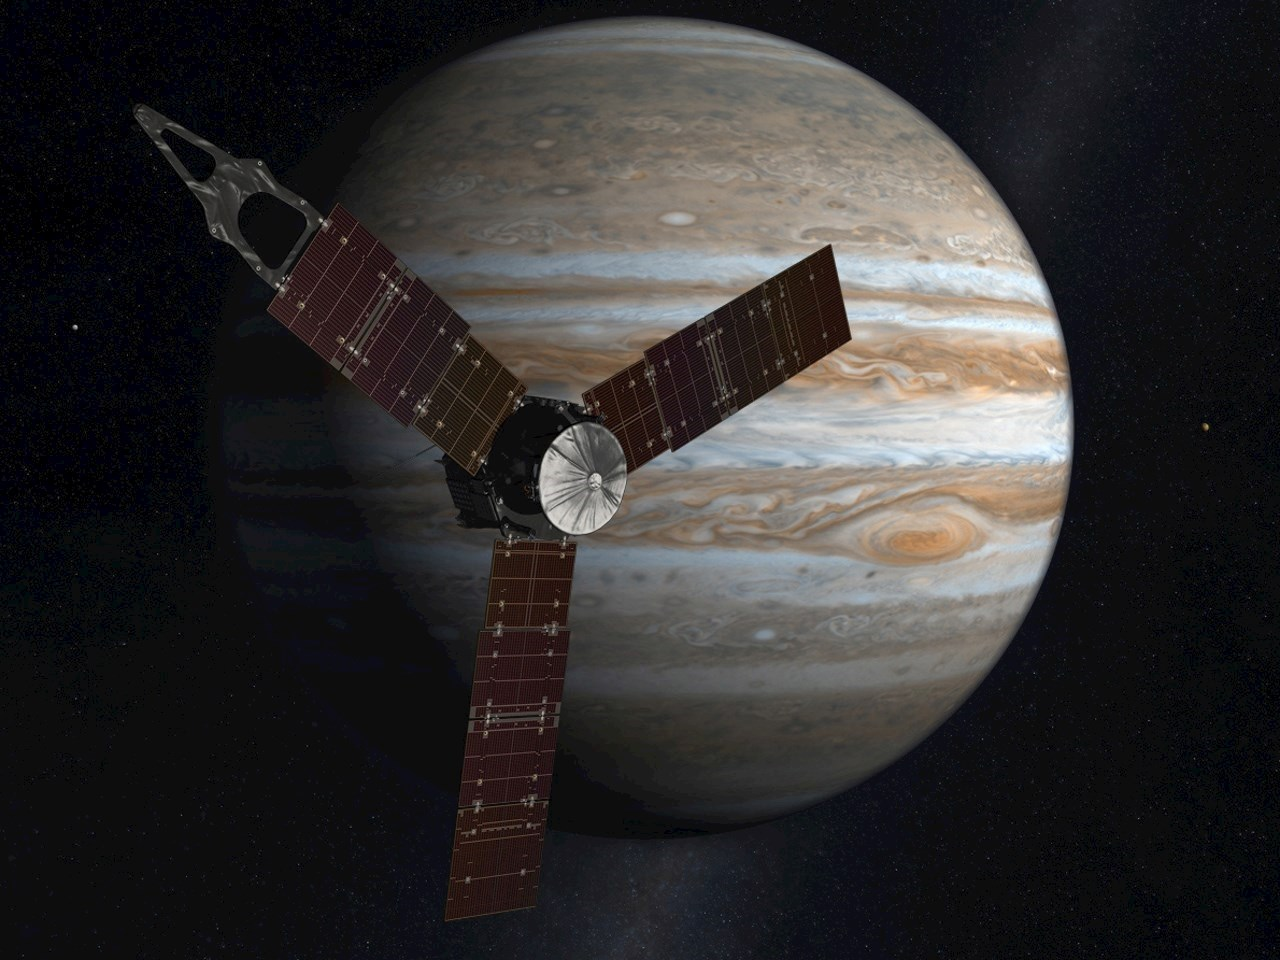 Illustration of the Juno spacecraft mission to Jupiter